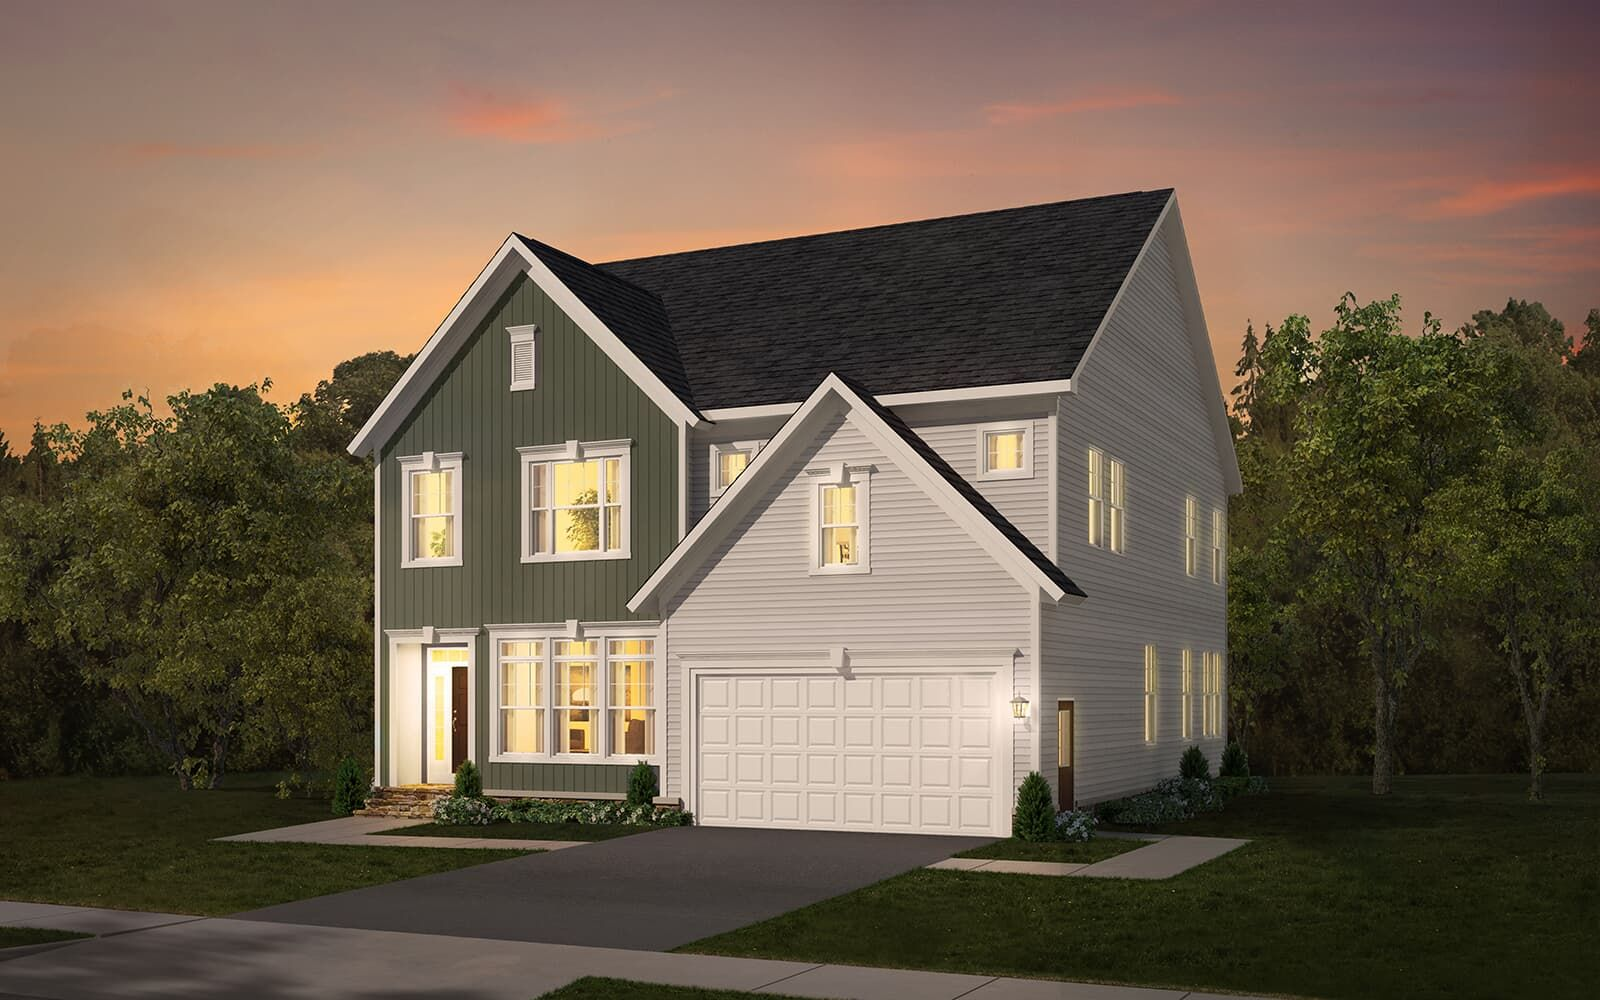 Exterior:Elevation 1 of the Beckner a home design by Brookfield Residential at The Bluffs at Sleeter Lake